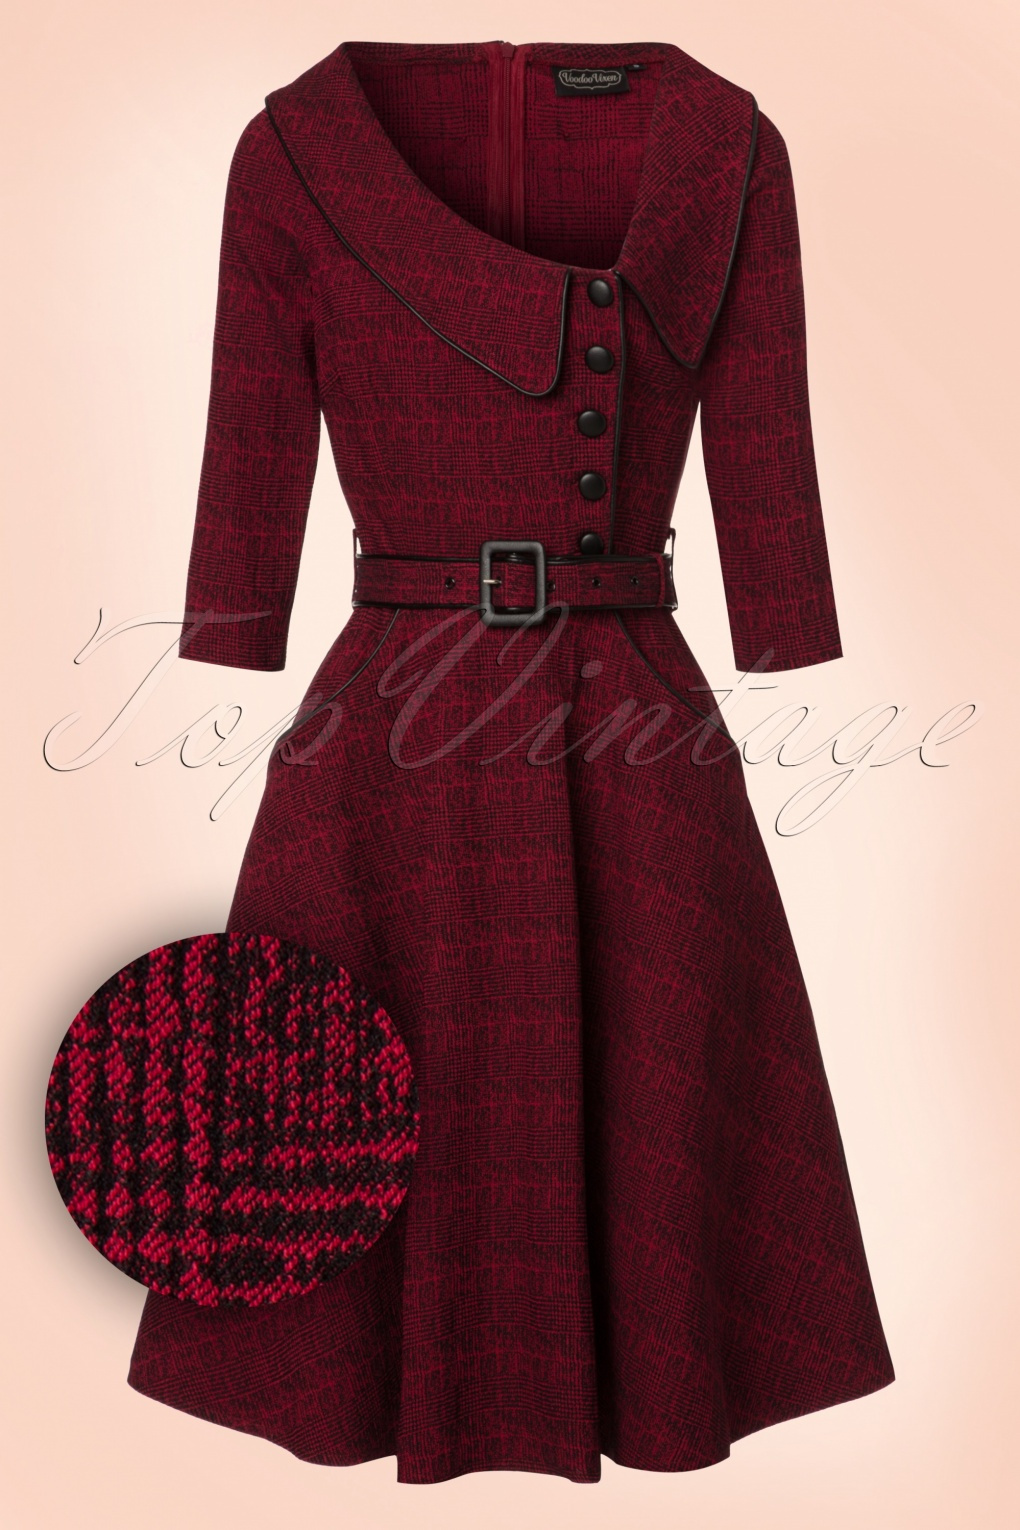 1940s Fashions In Red White Blue With Images: 40s Lilly Swing Dress In Wine Red